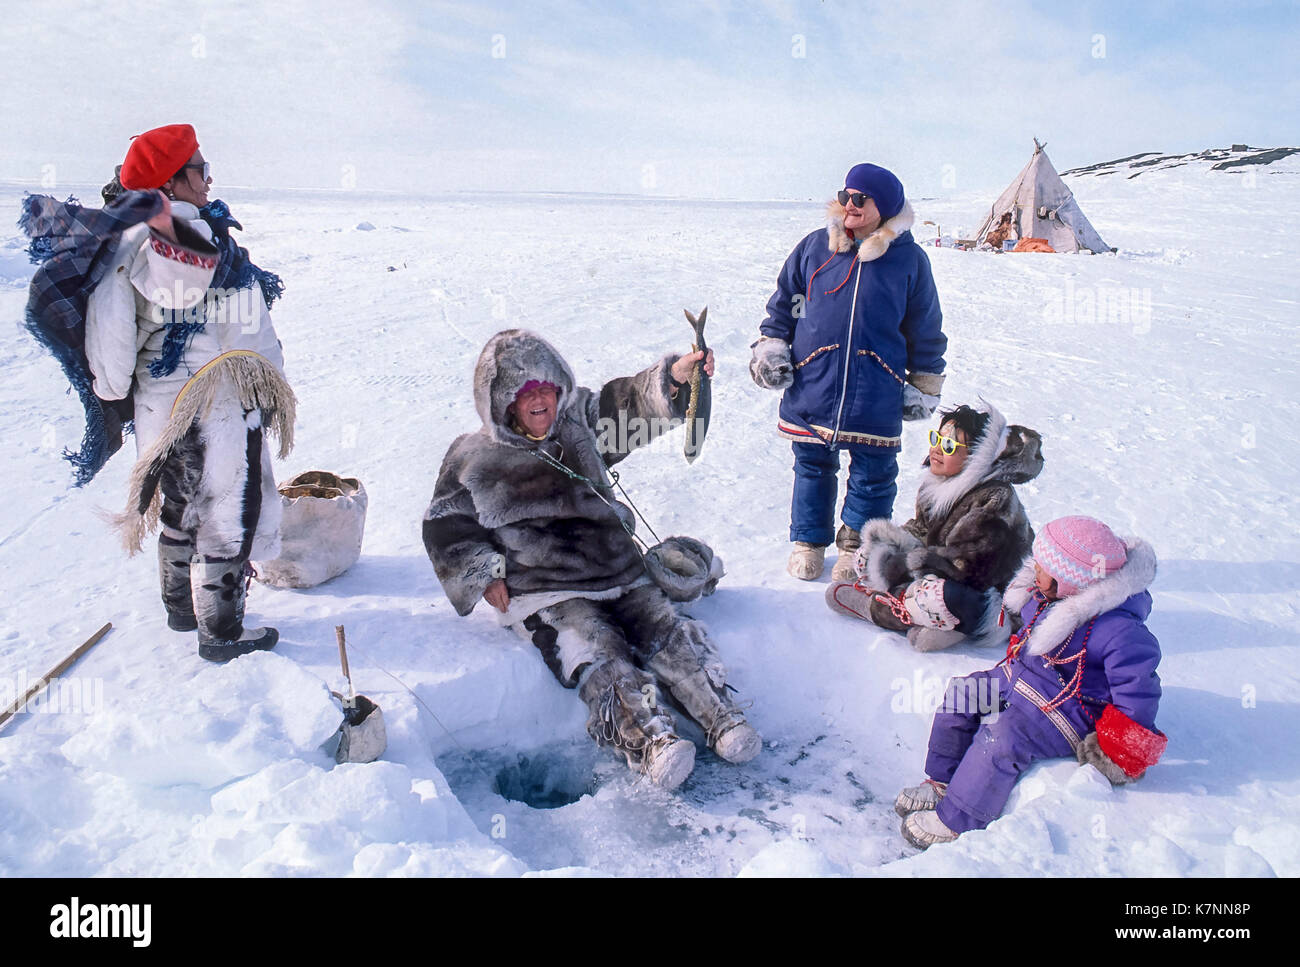 Visitor dressed in traditional caribou clothing, tries her hand at fishing in camp outside Baker Lake, Nunavut, Canada. Inuit elders and Inuit children are gathered around the fishing hole. - Stock Image